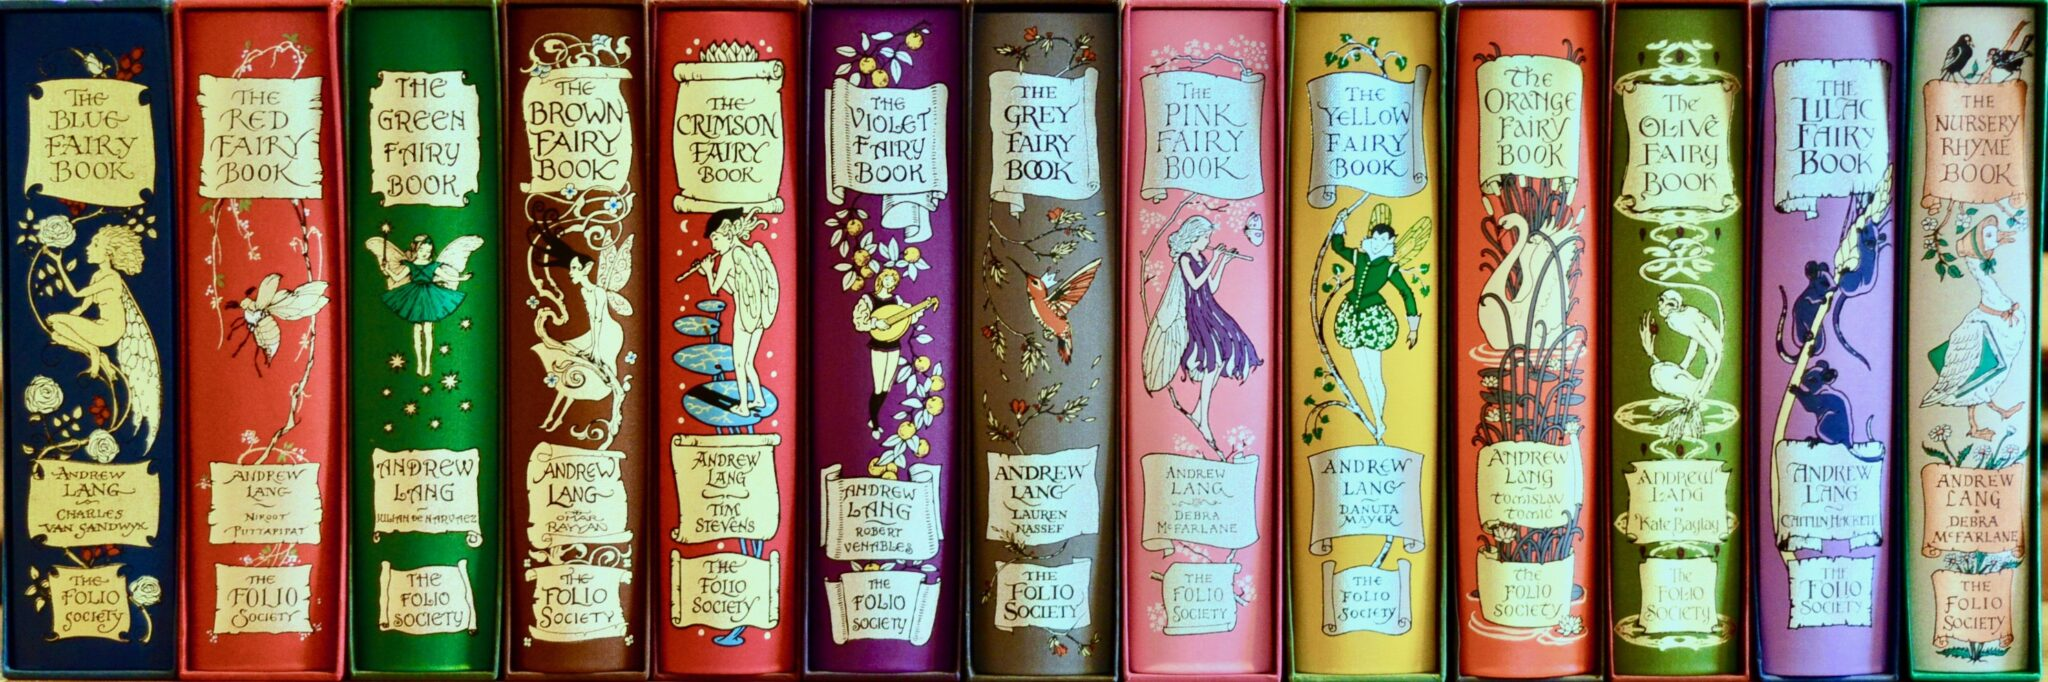 fs fairy books